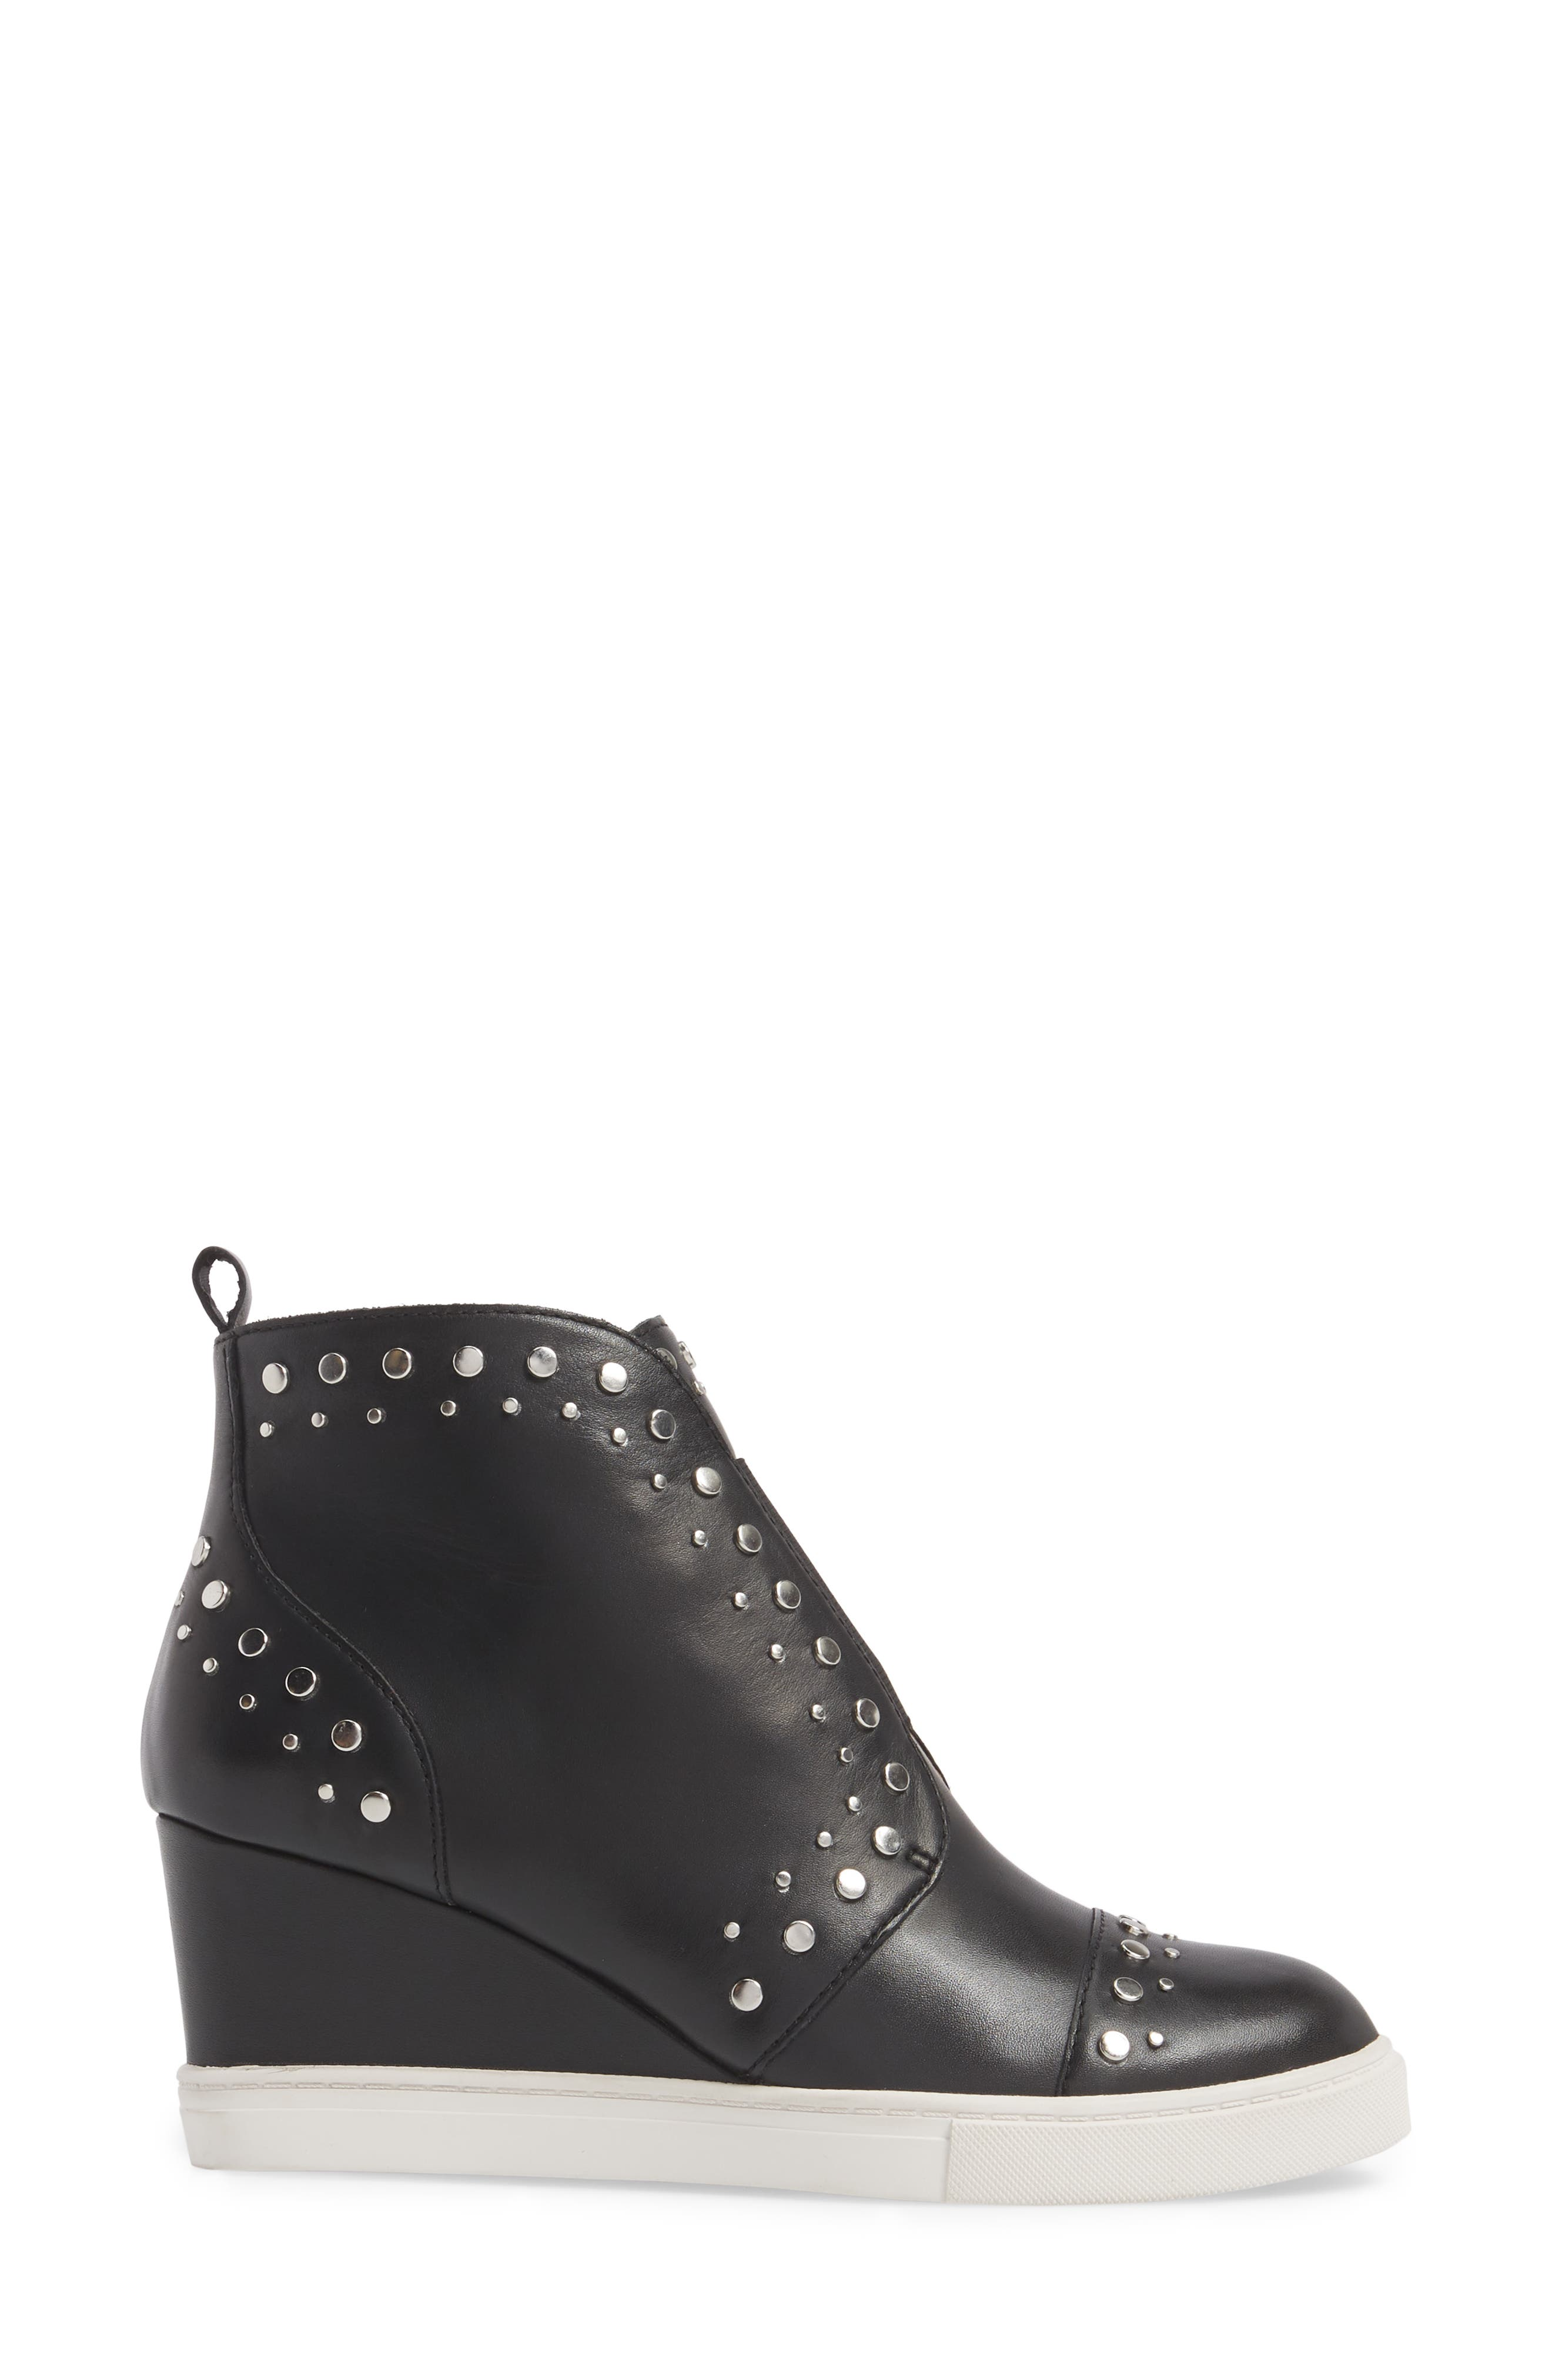 LINEA PAOLO, Felicity Wedge Sneaker, Alternate thumbnail 3, color, BLACK LEATHER